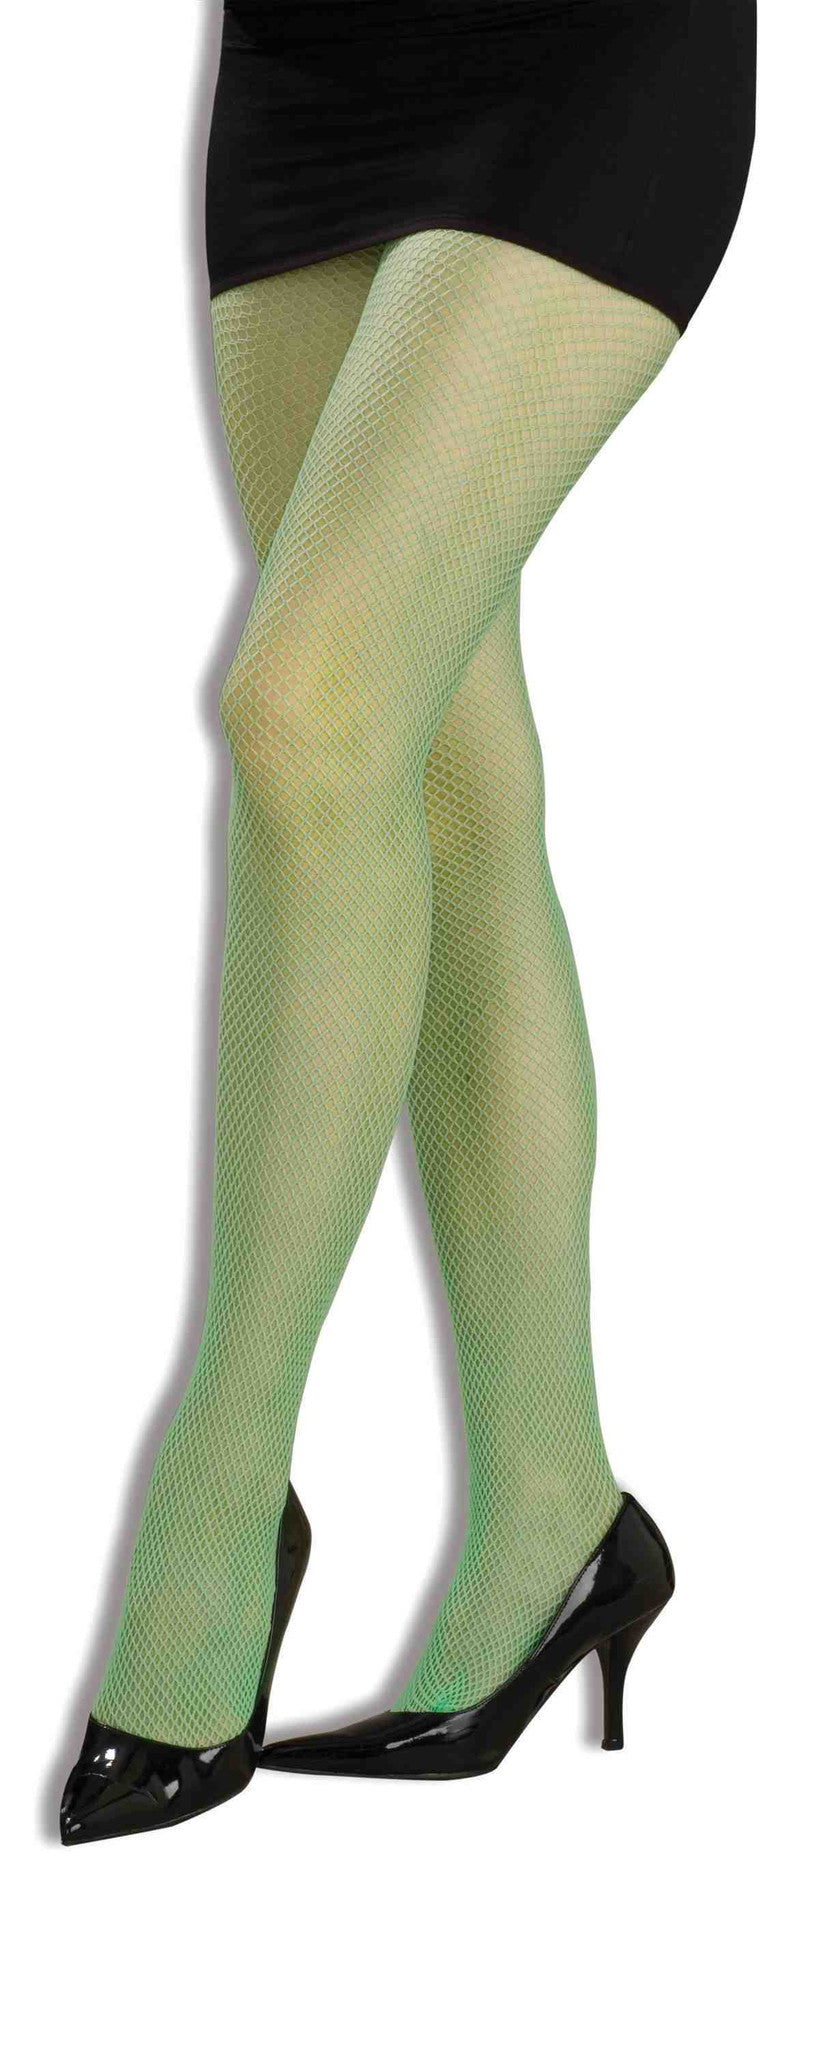 Halloween Costume Neon Fishnet Pantyhose